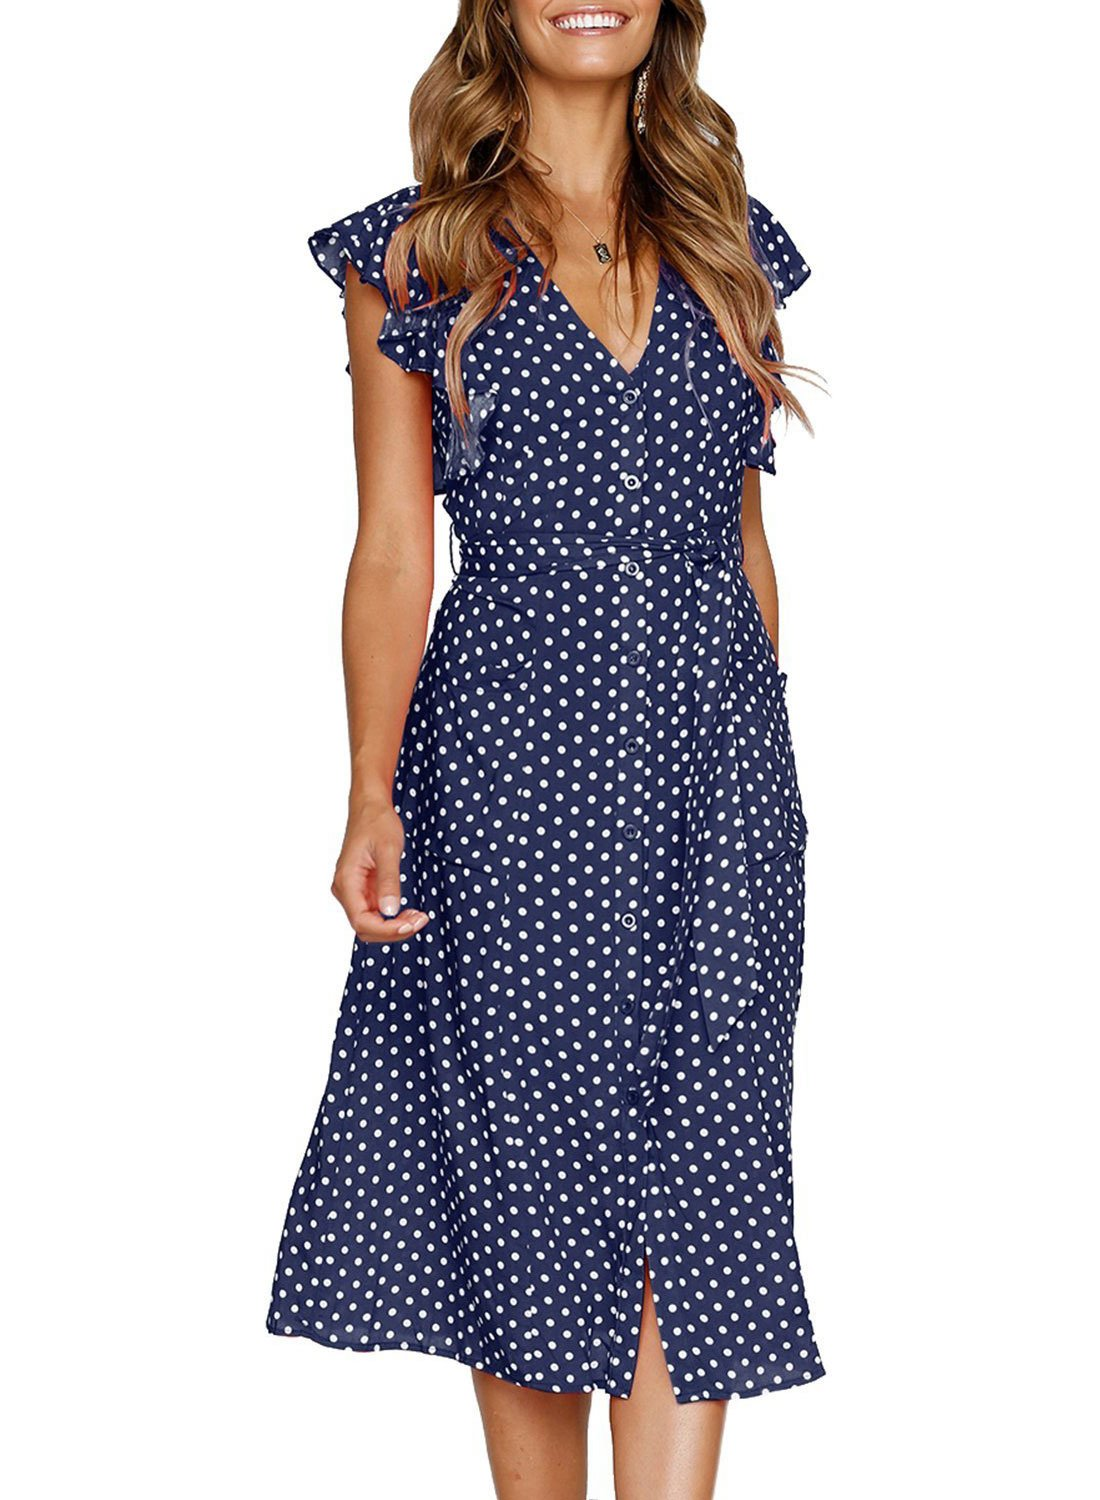 Rainlover Women's Summer Boho Polka Dot Sleeveless V Neck Swing Midi Dress with Pockets (X-Large, 0982 Navy Blue Dot)